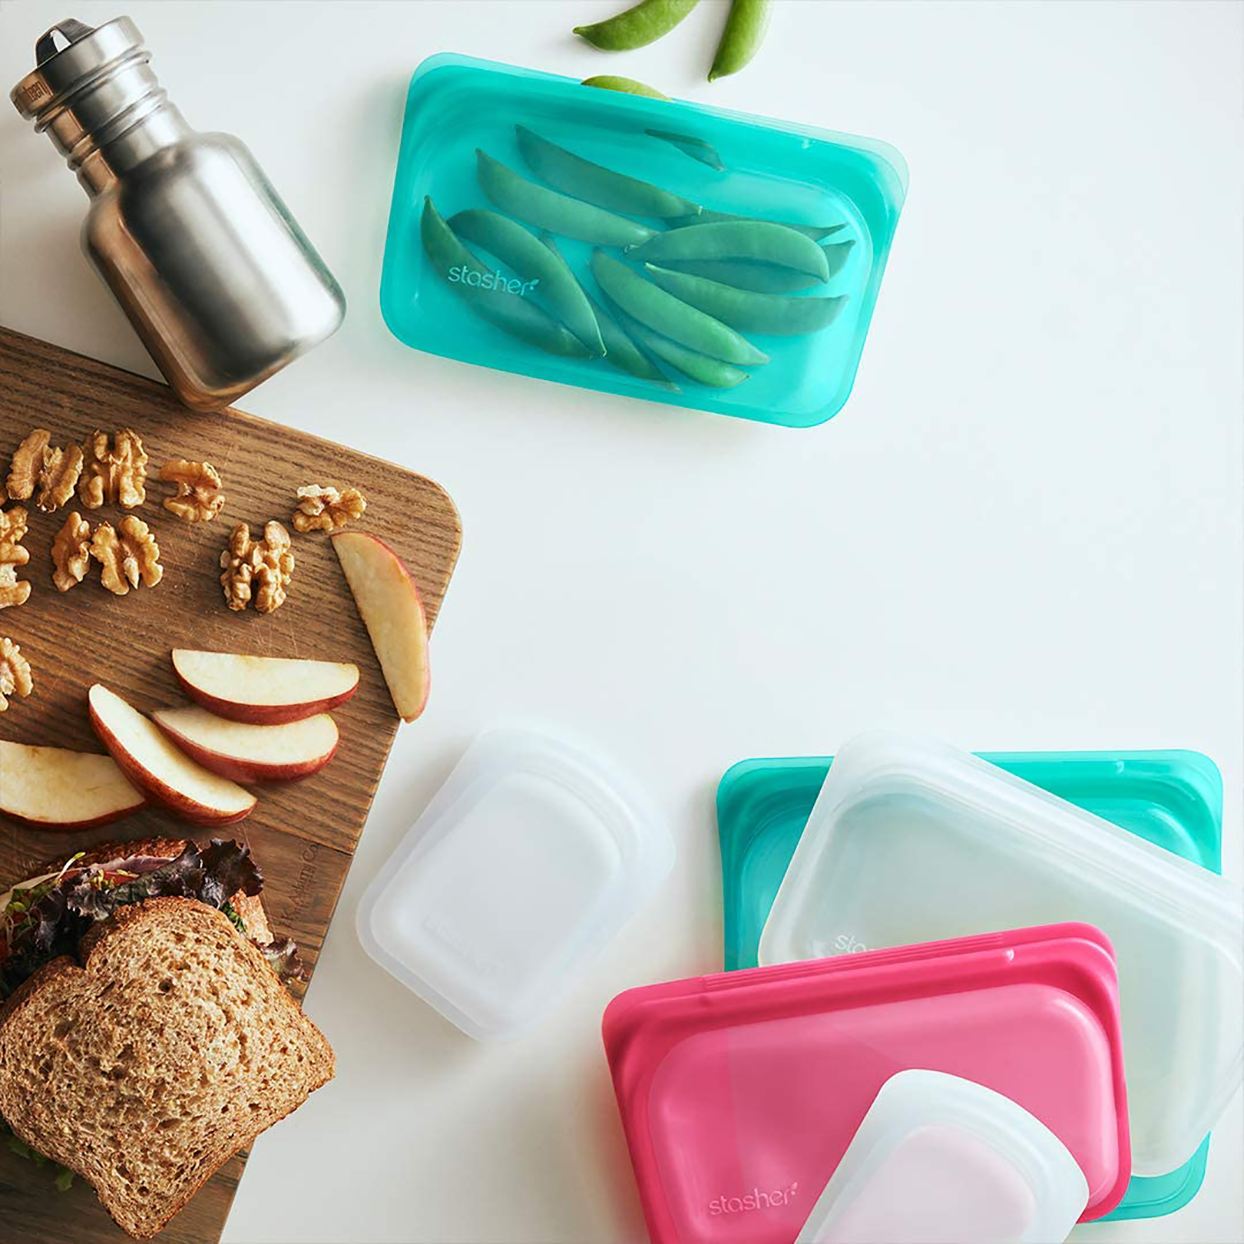 reusable snack bags in various colors on countertop